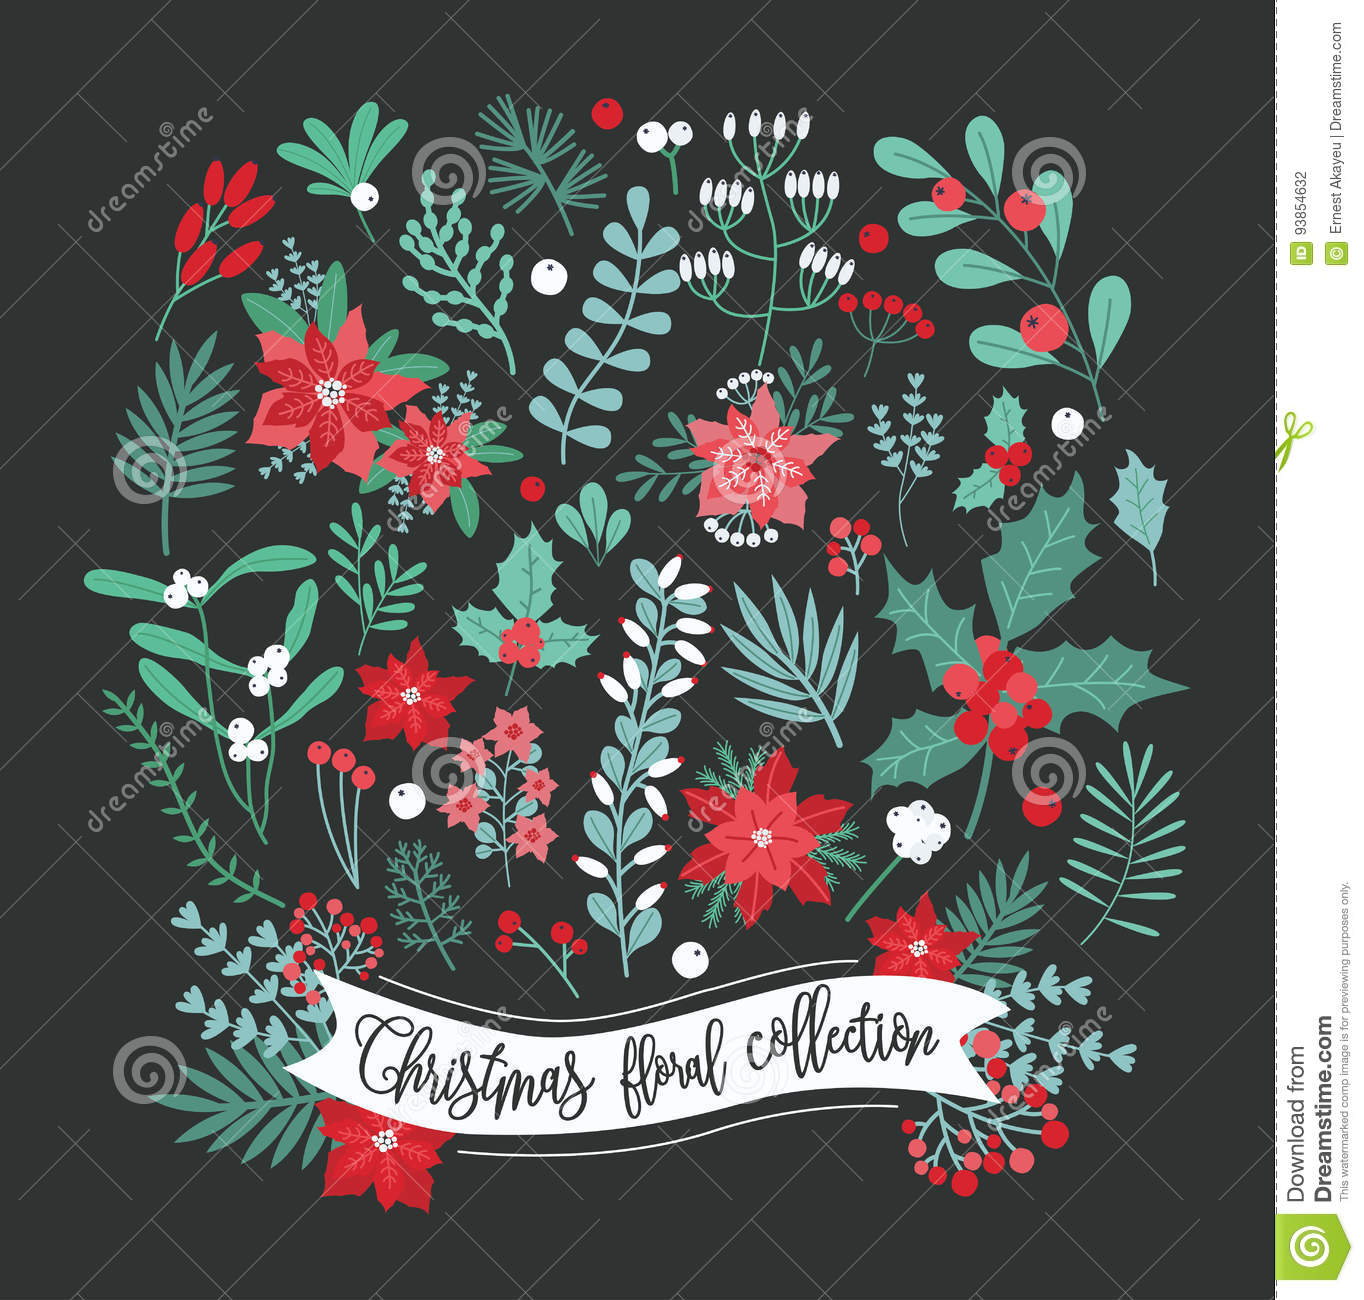 Christmas floral decoration collection. Set of different flowers, leaves and berry. Colorful vector design elements